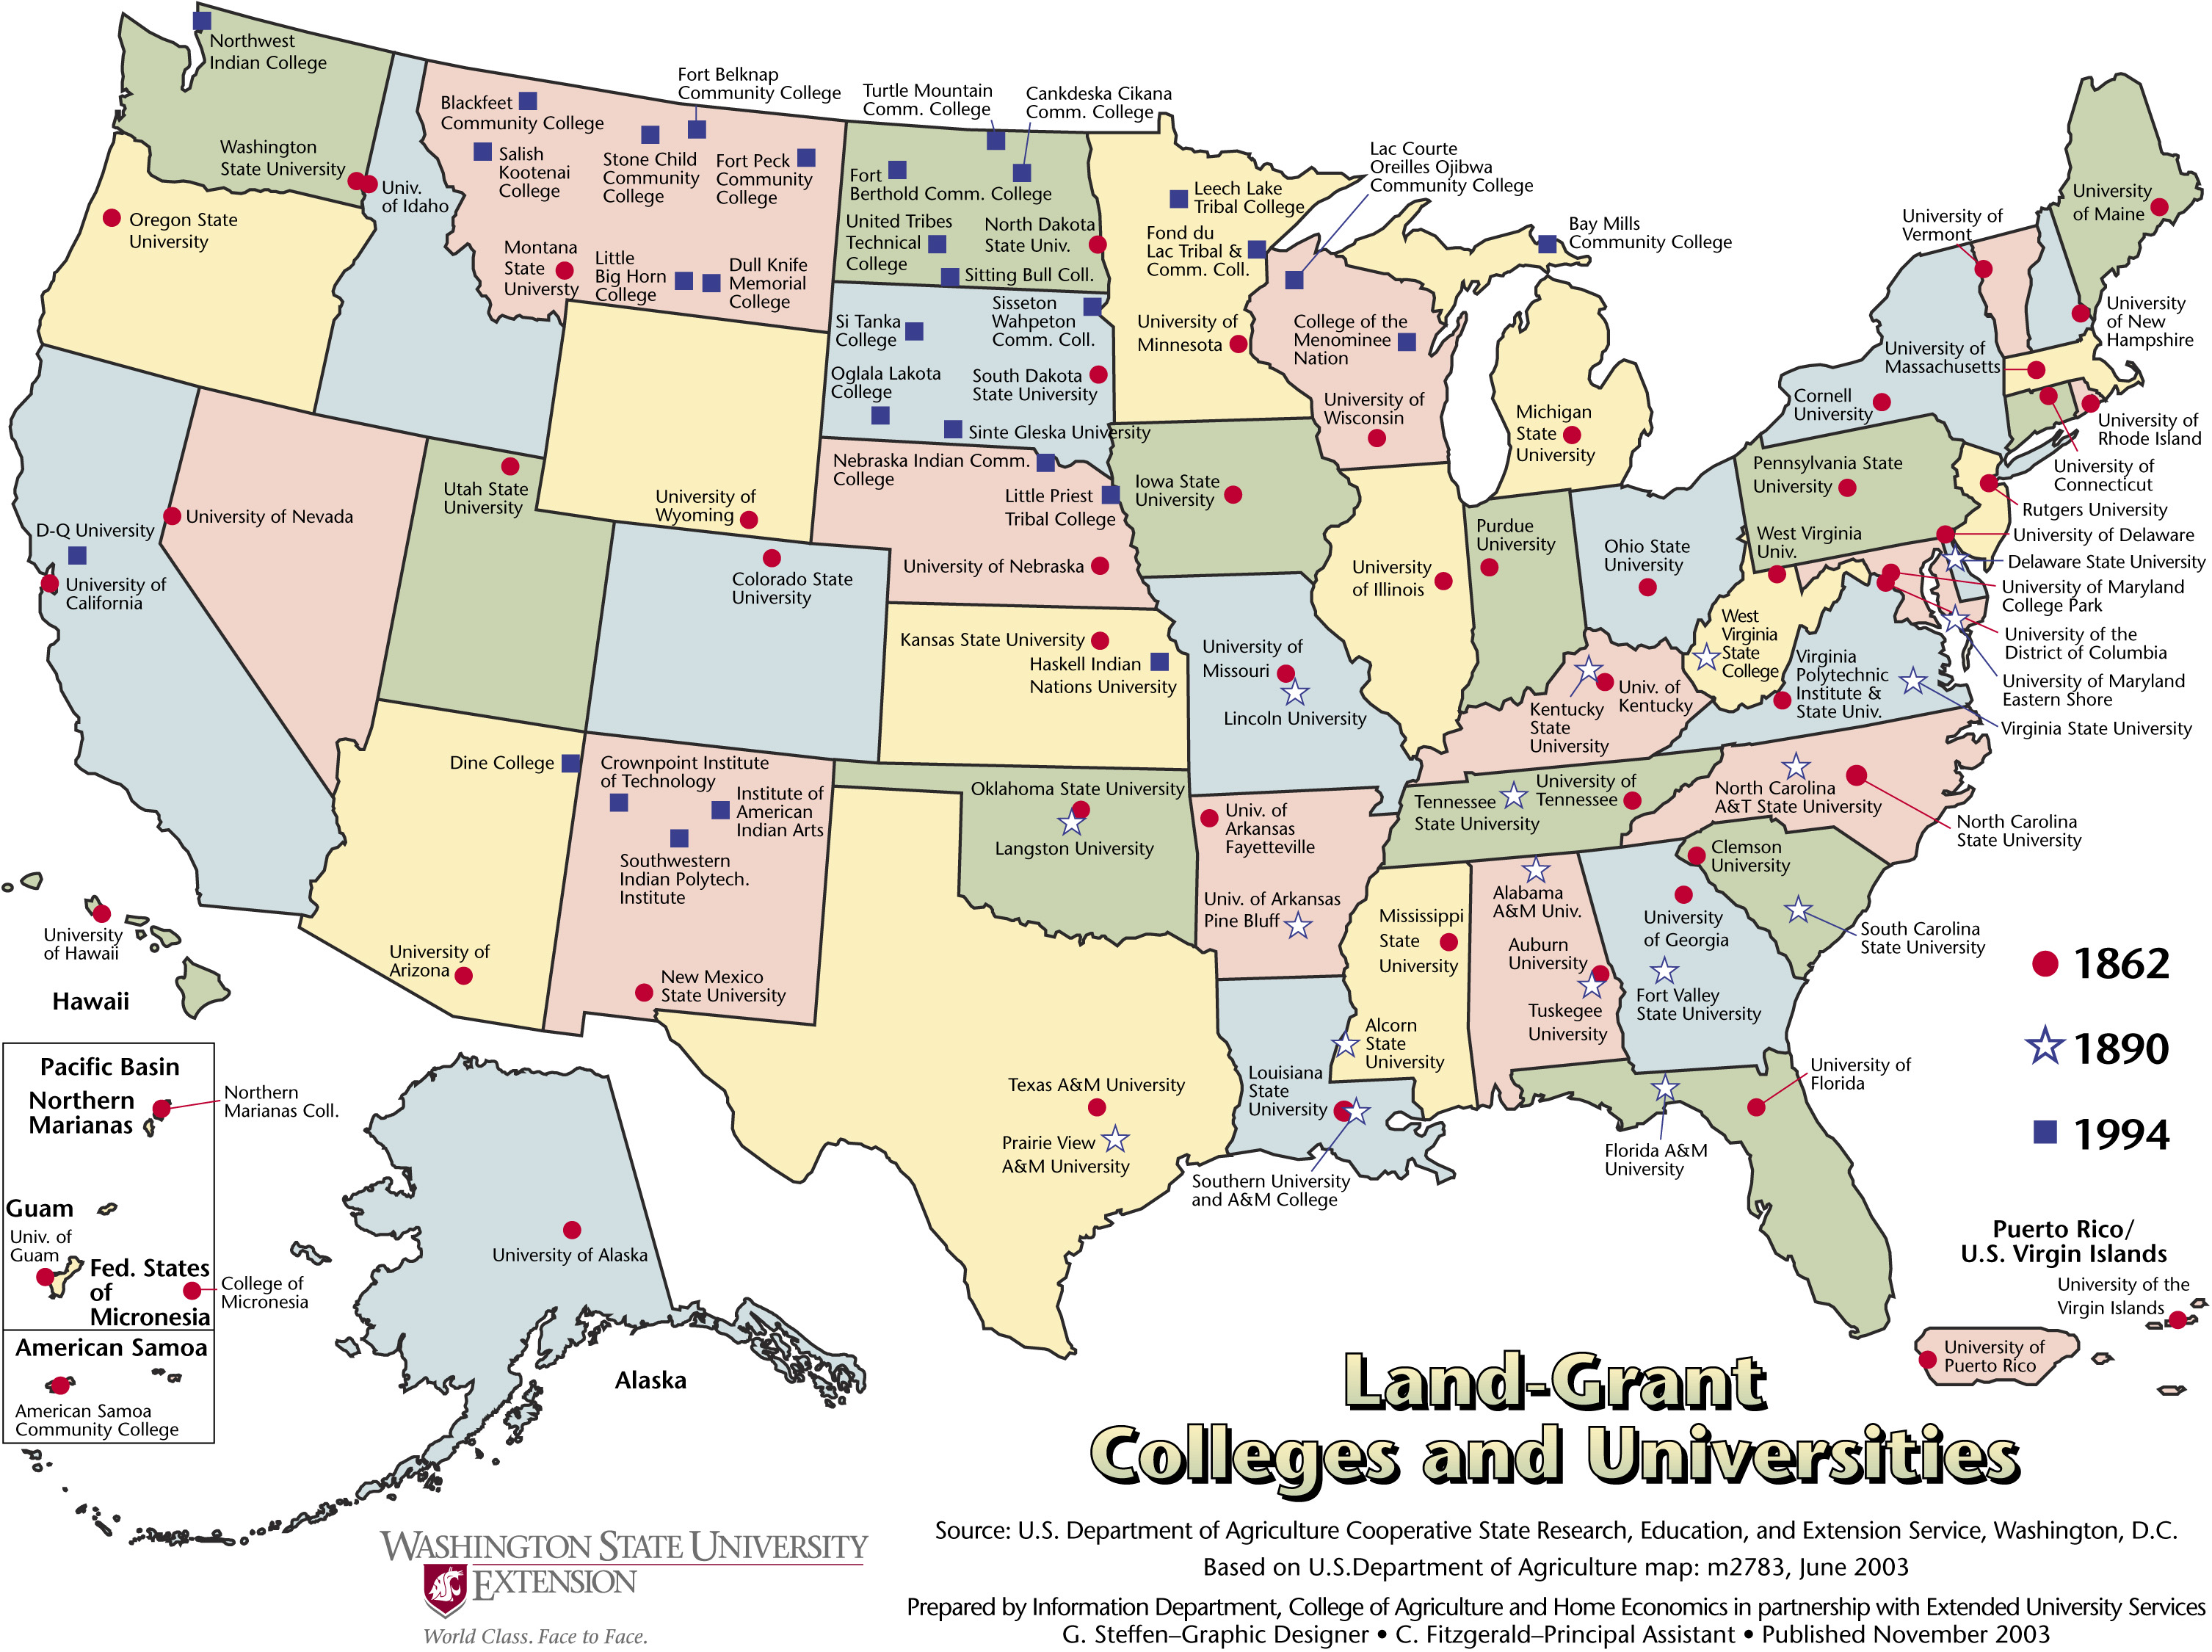 US College And University Land Grant Map USA Mappery - Us map of colleges and universities